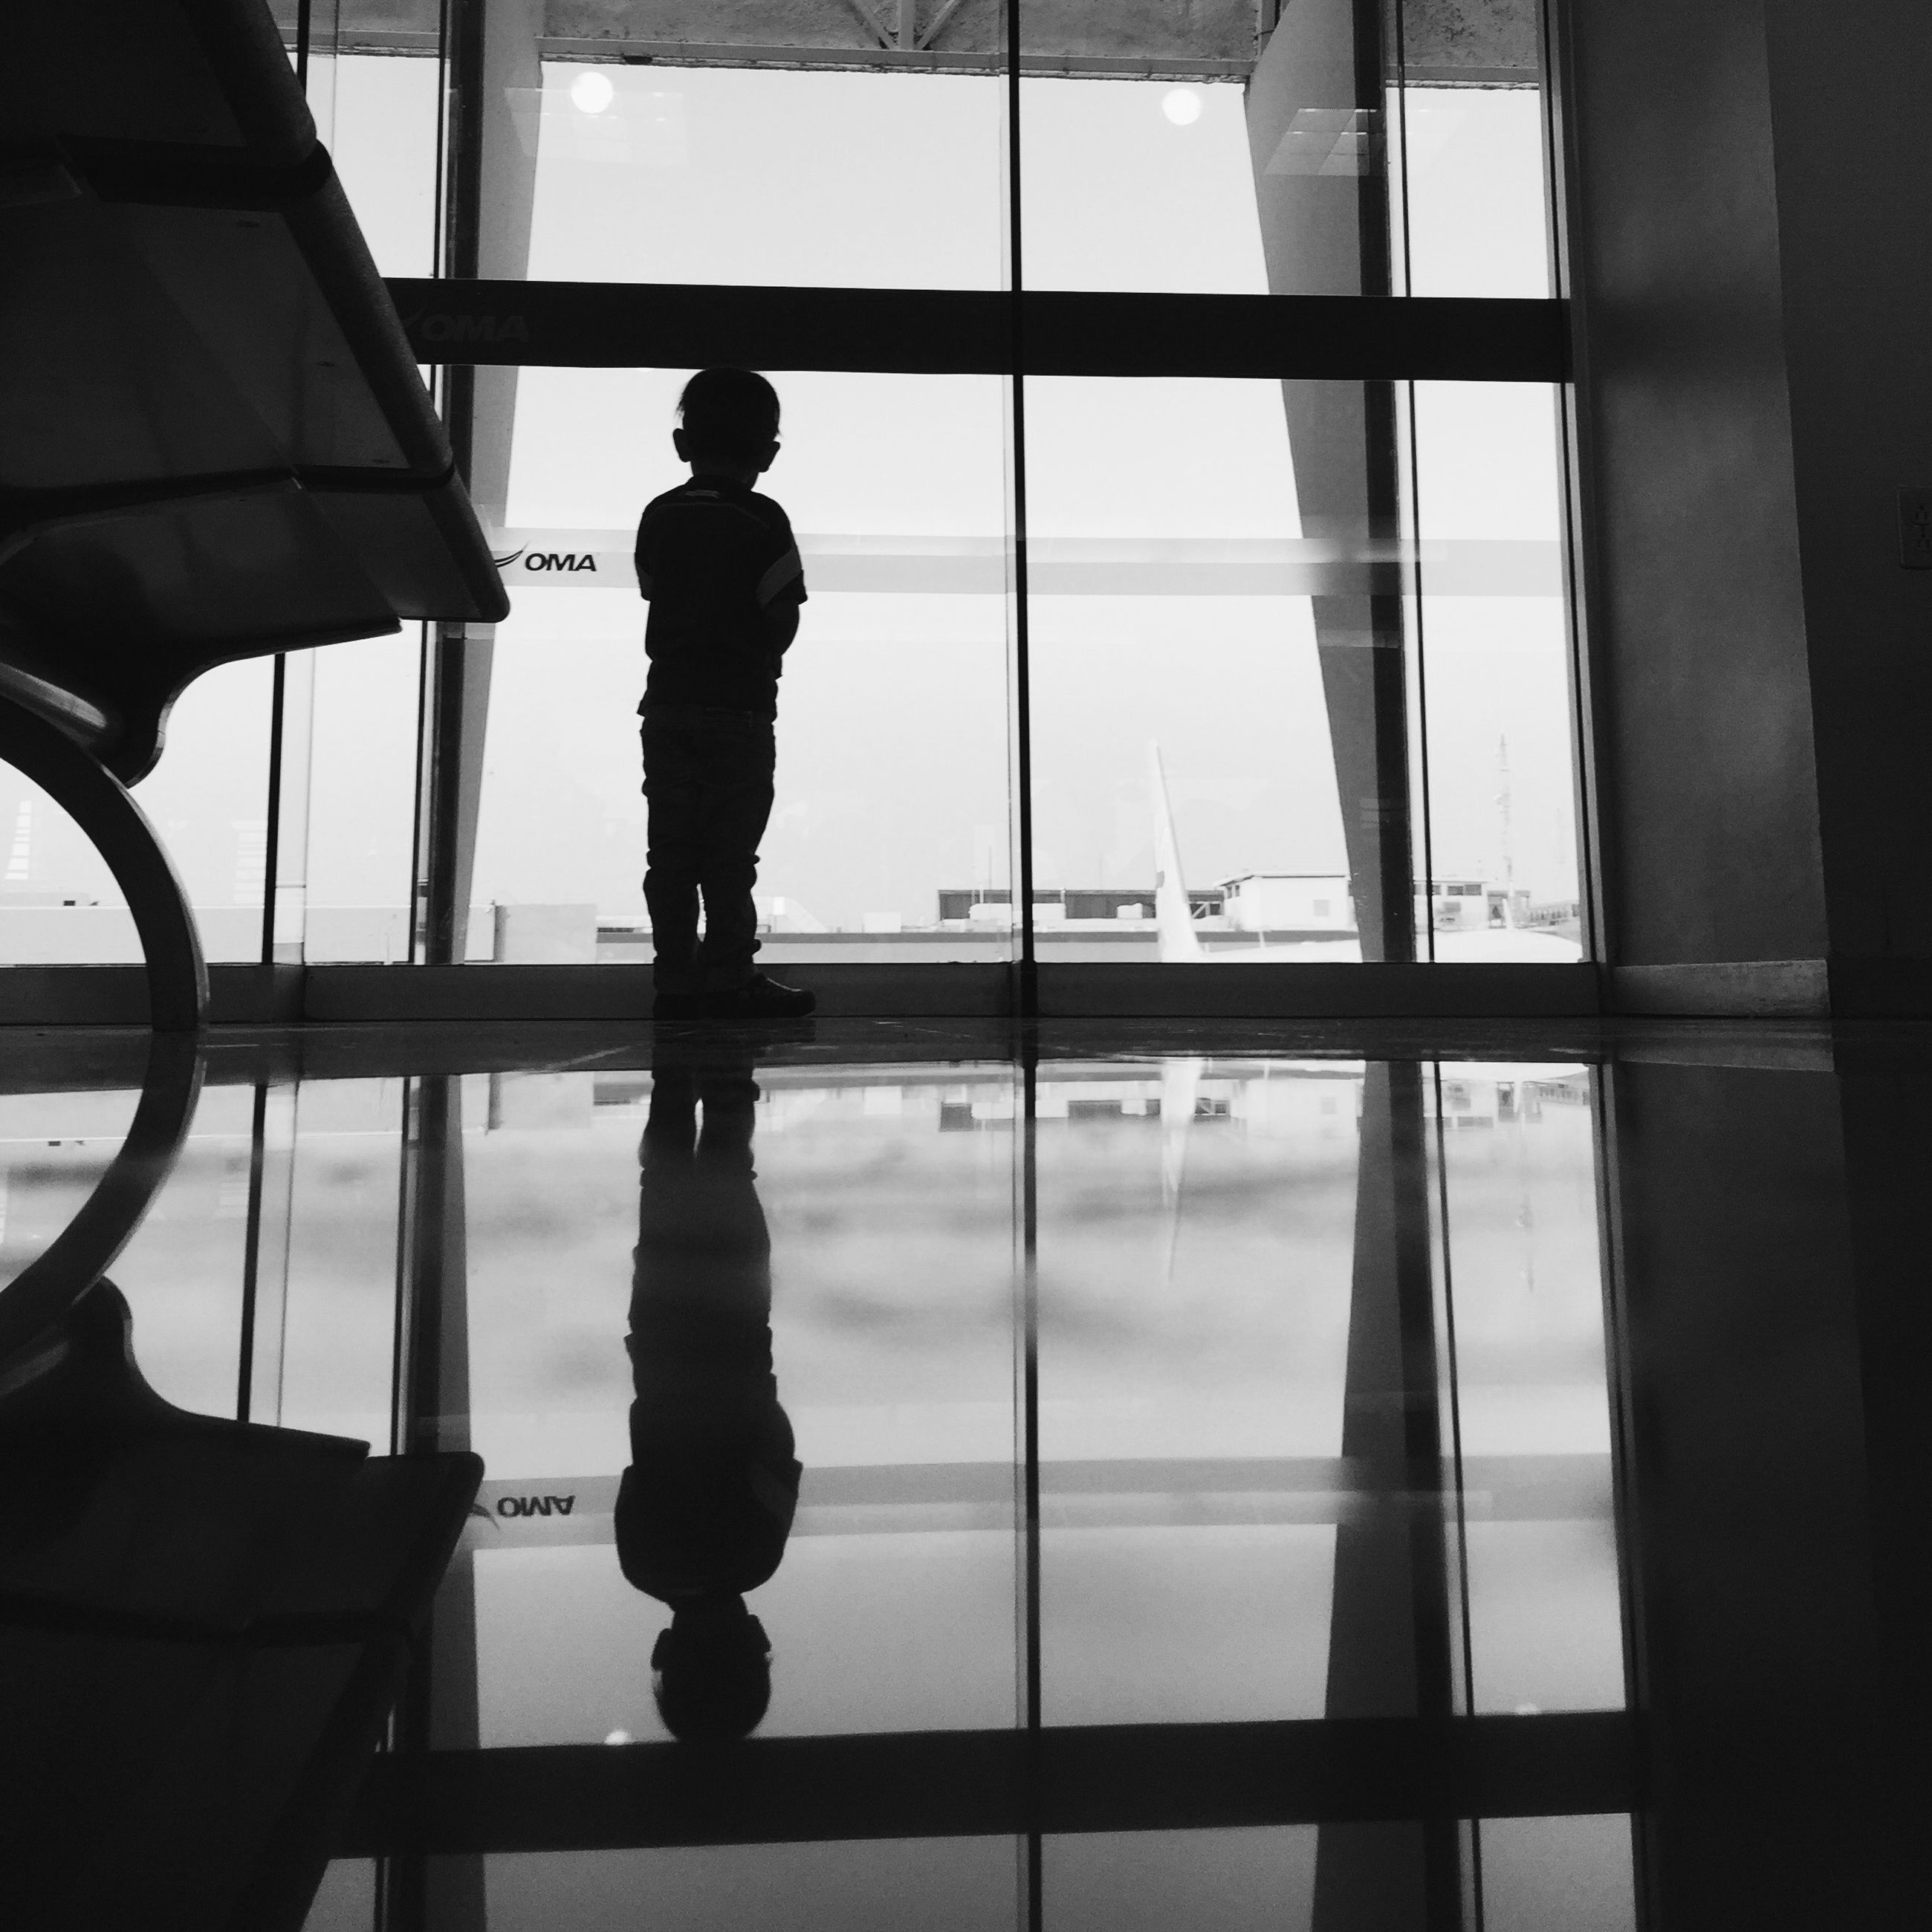 indoors, window, glass - material, transparent, reflection, glass, built structure, architecture, men, modern, day, looking through window, transportation, travel, silhouette, sky, lifestyles, sunlight, airport